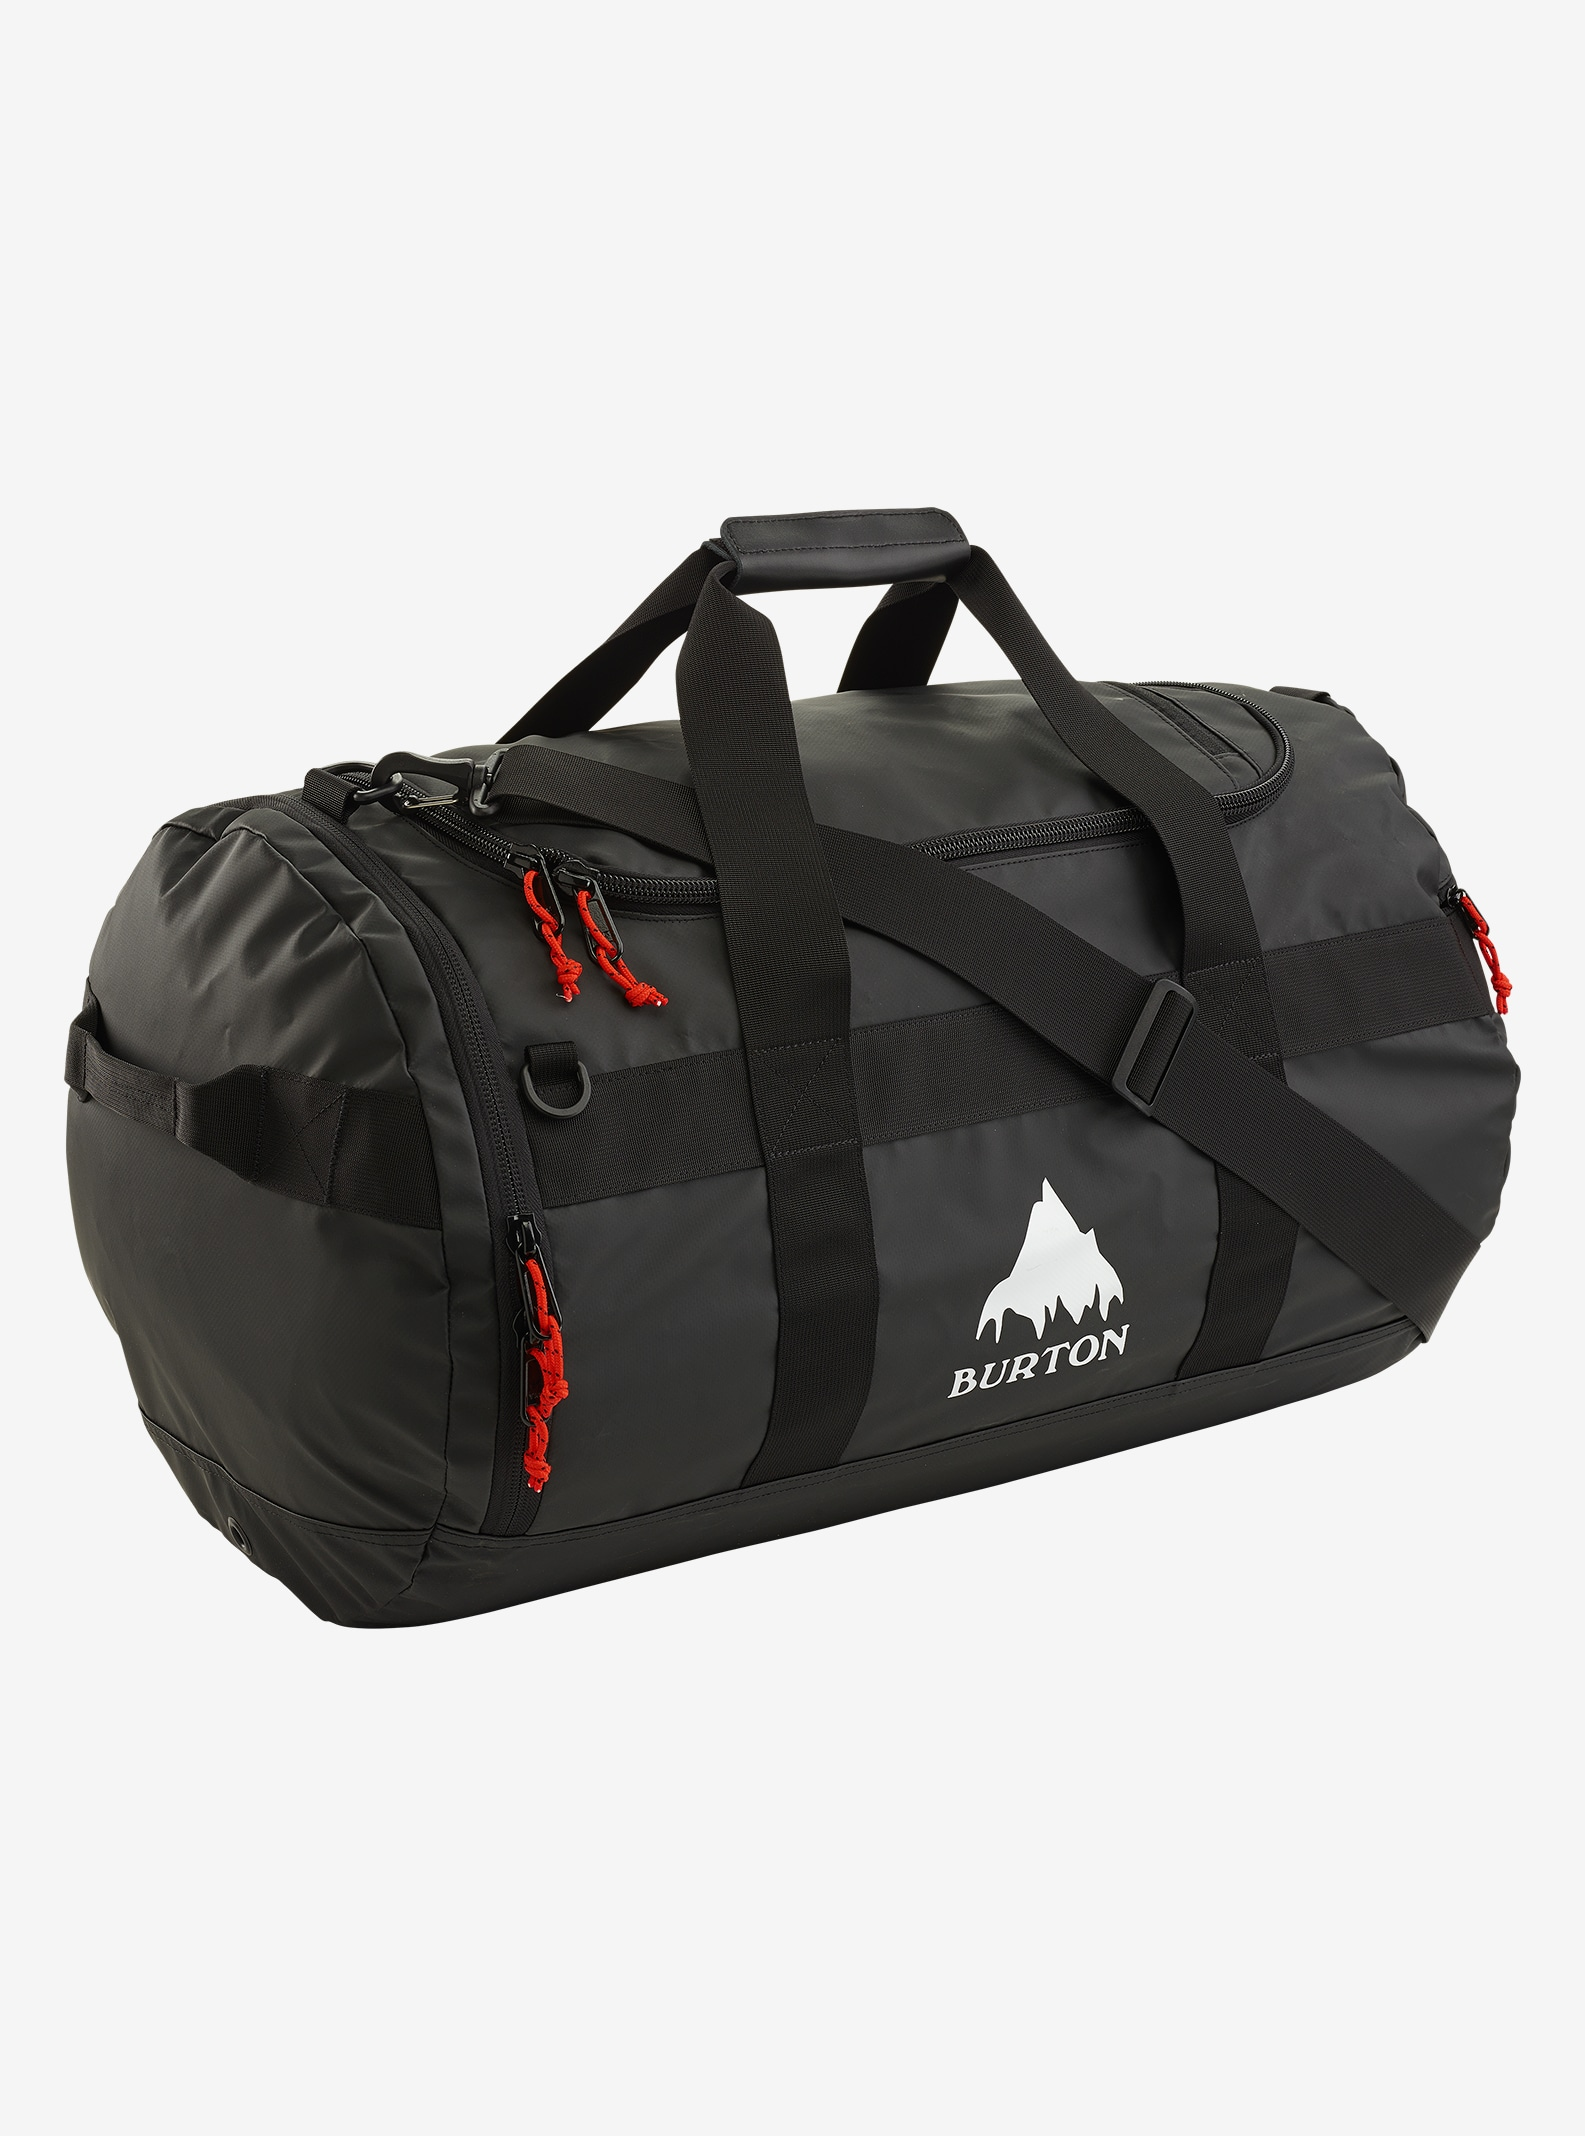 Burton Backhill Duffel Bag Medium 70L shown in True Black Tarp